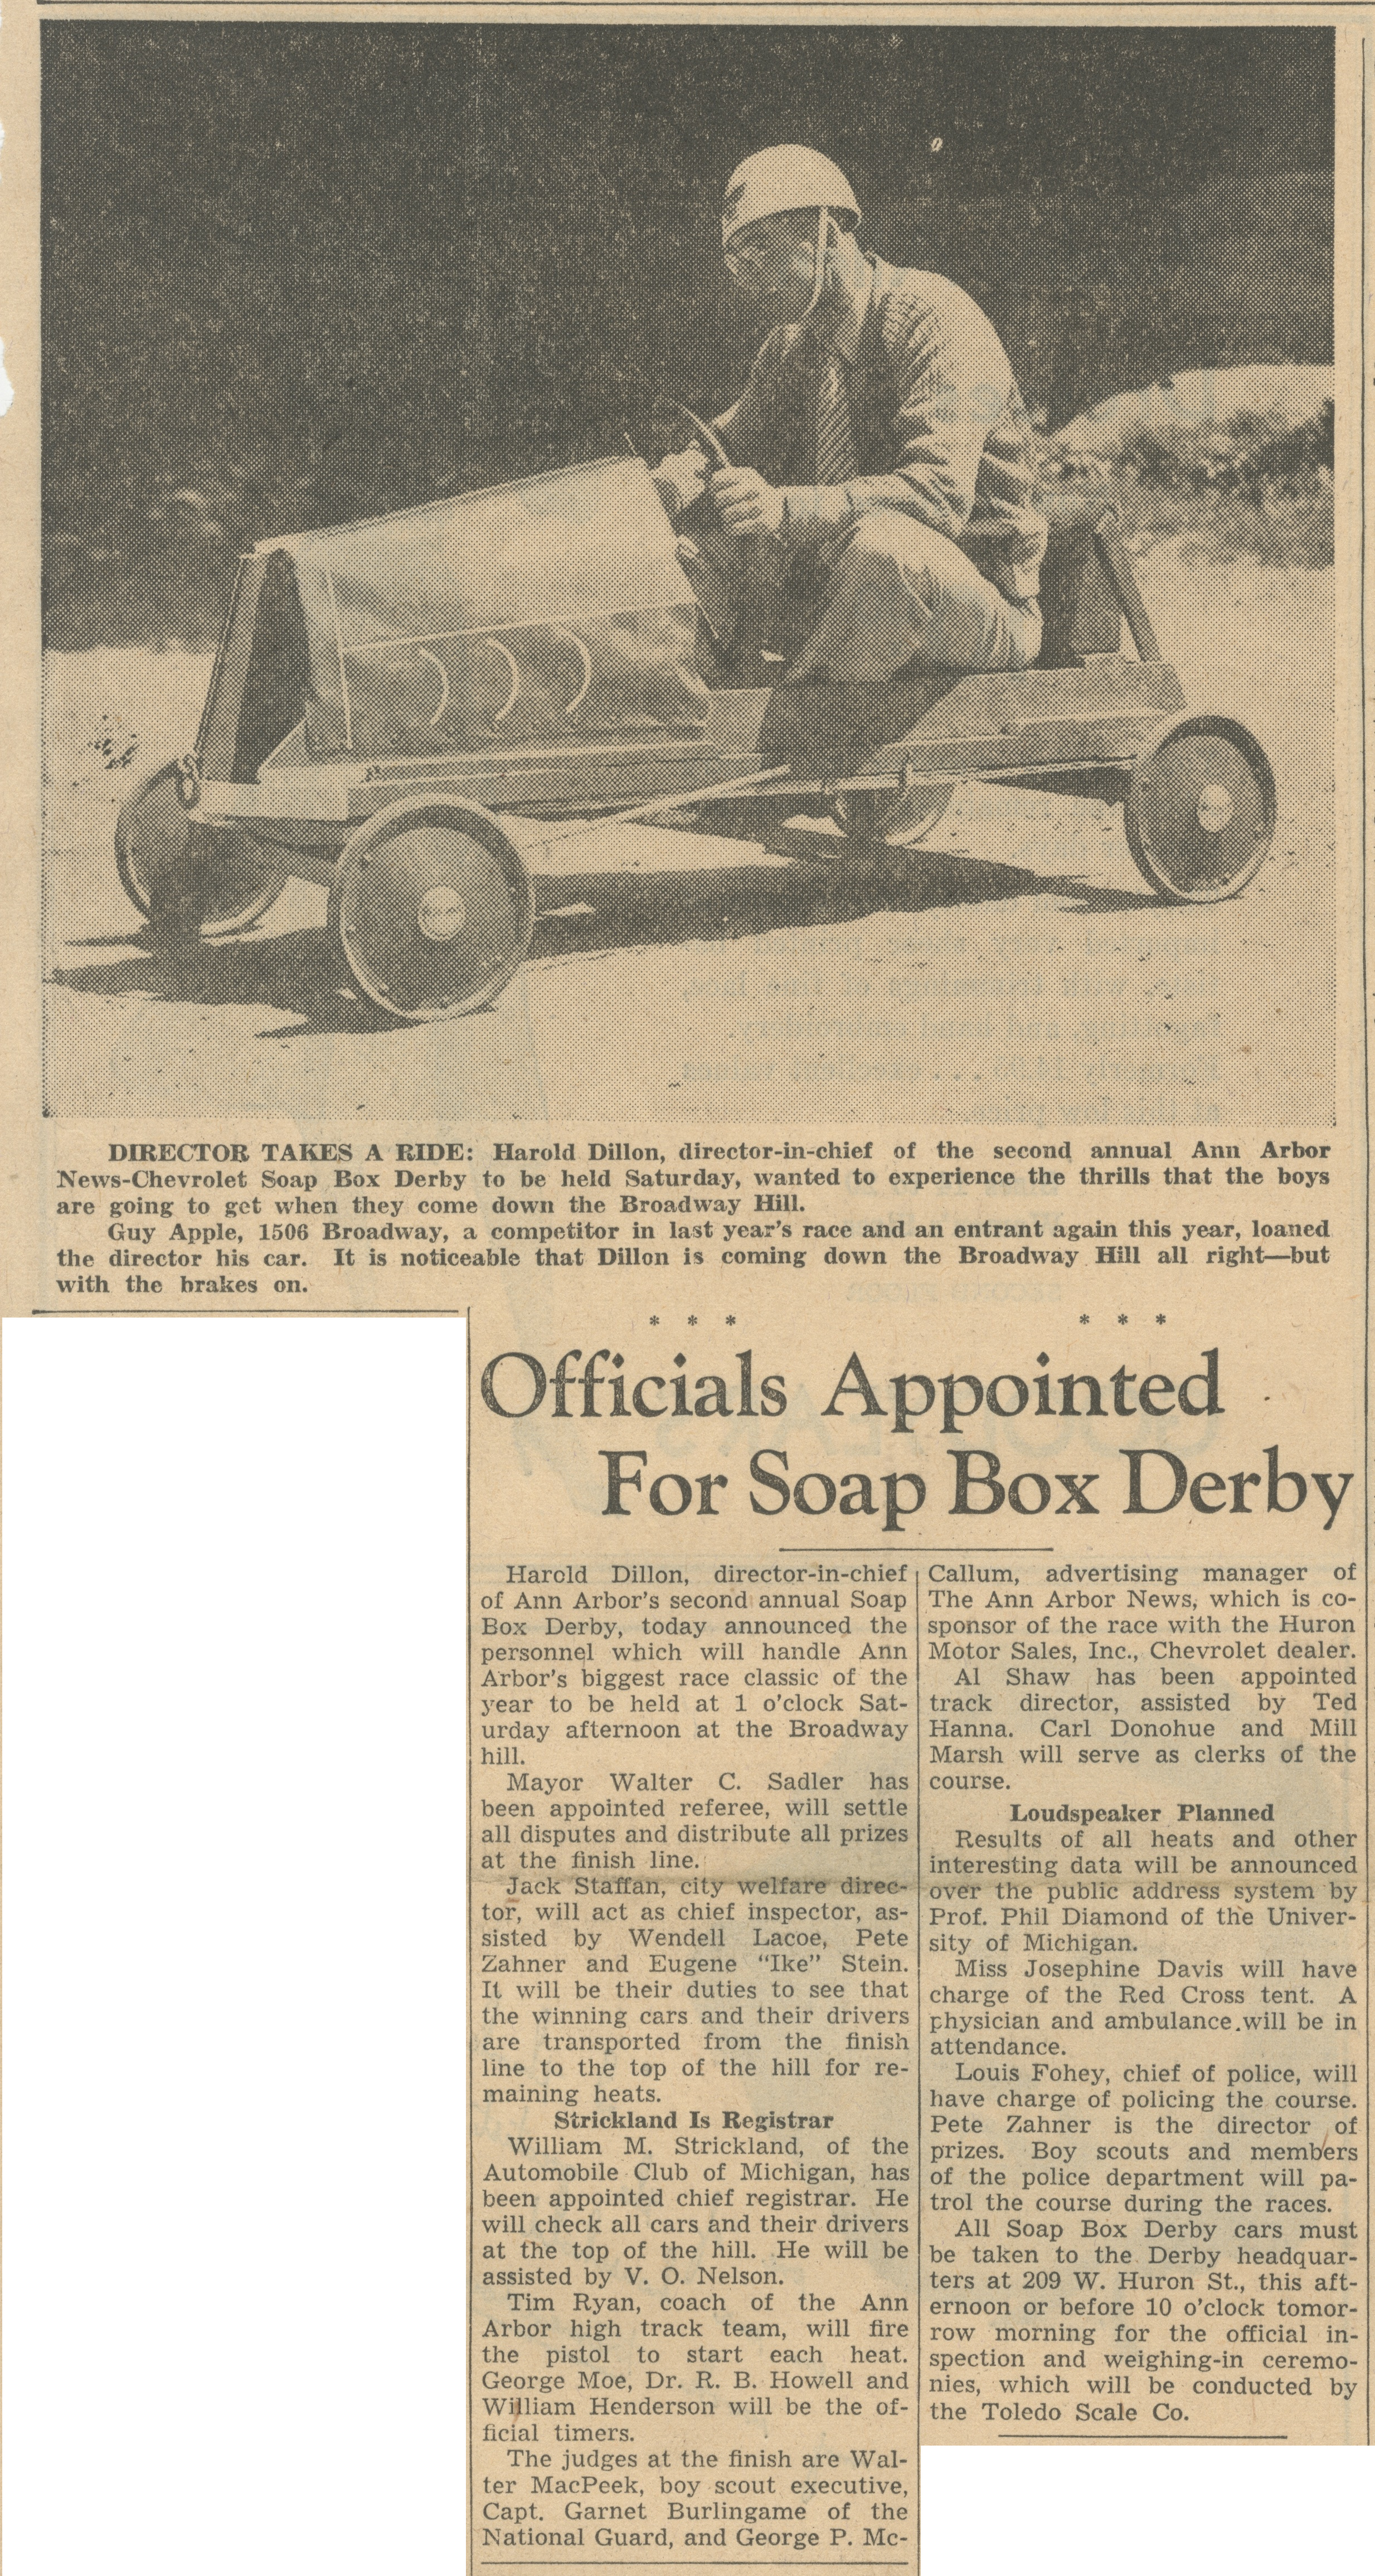 Officials Appointed For Soap Box Derby image